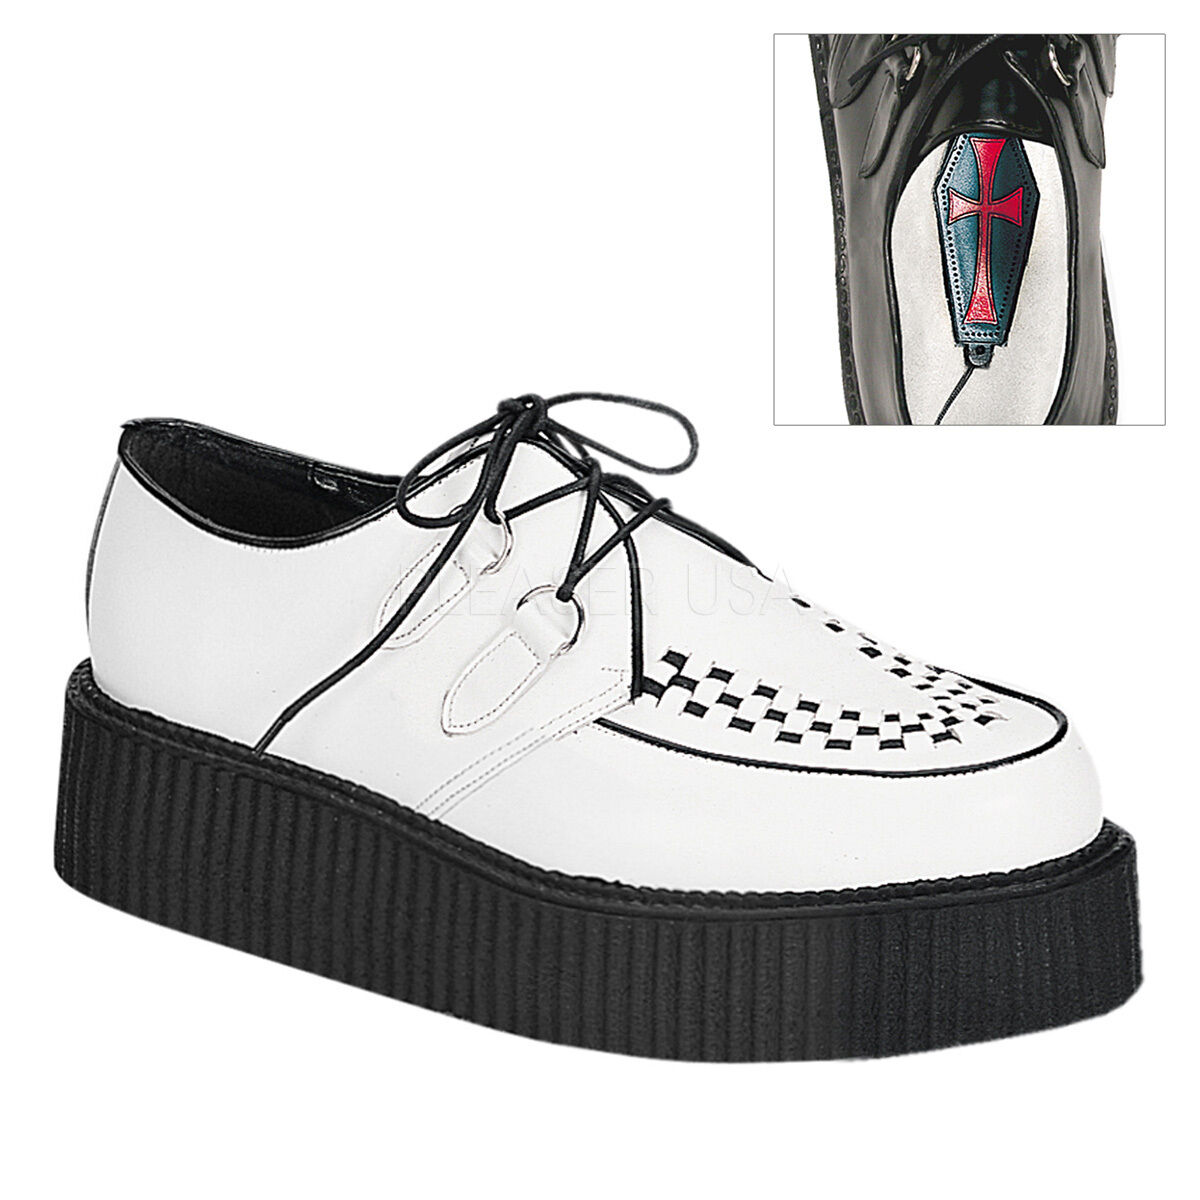 Demonia 2  Platform White Leather Creepers shoes Gothic 4 5 6 7 8 9 10 11 12 13